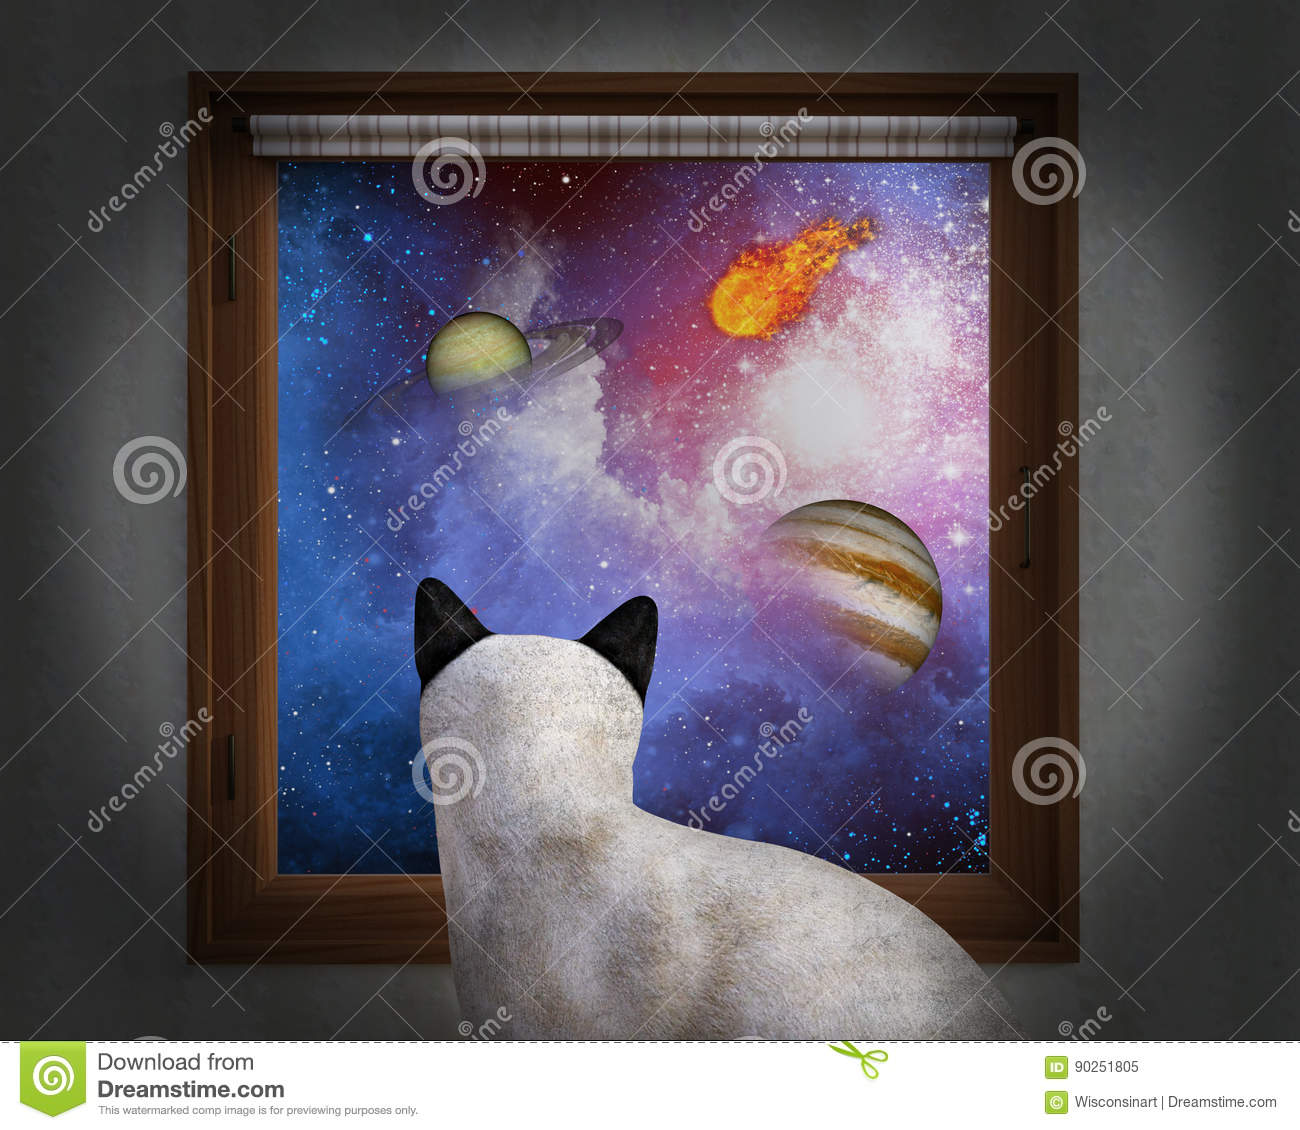 Cat Sit Window, estrellas, planetas